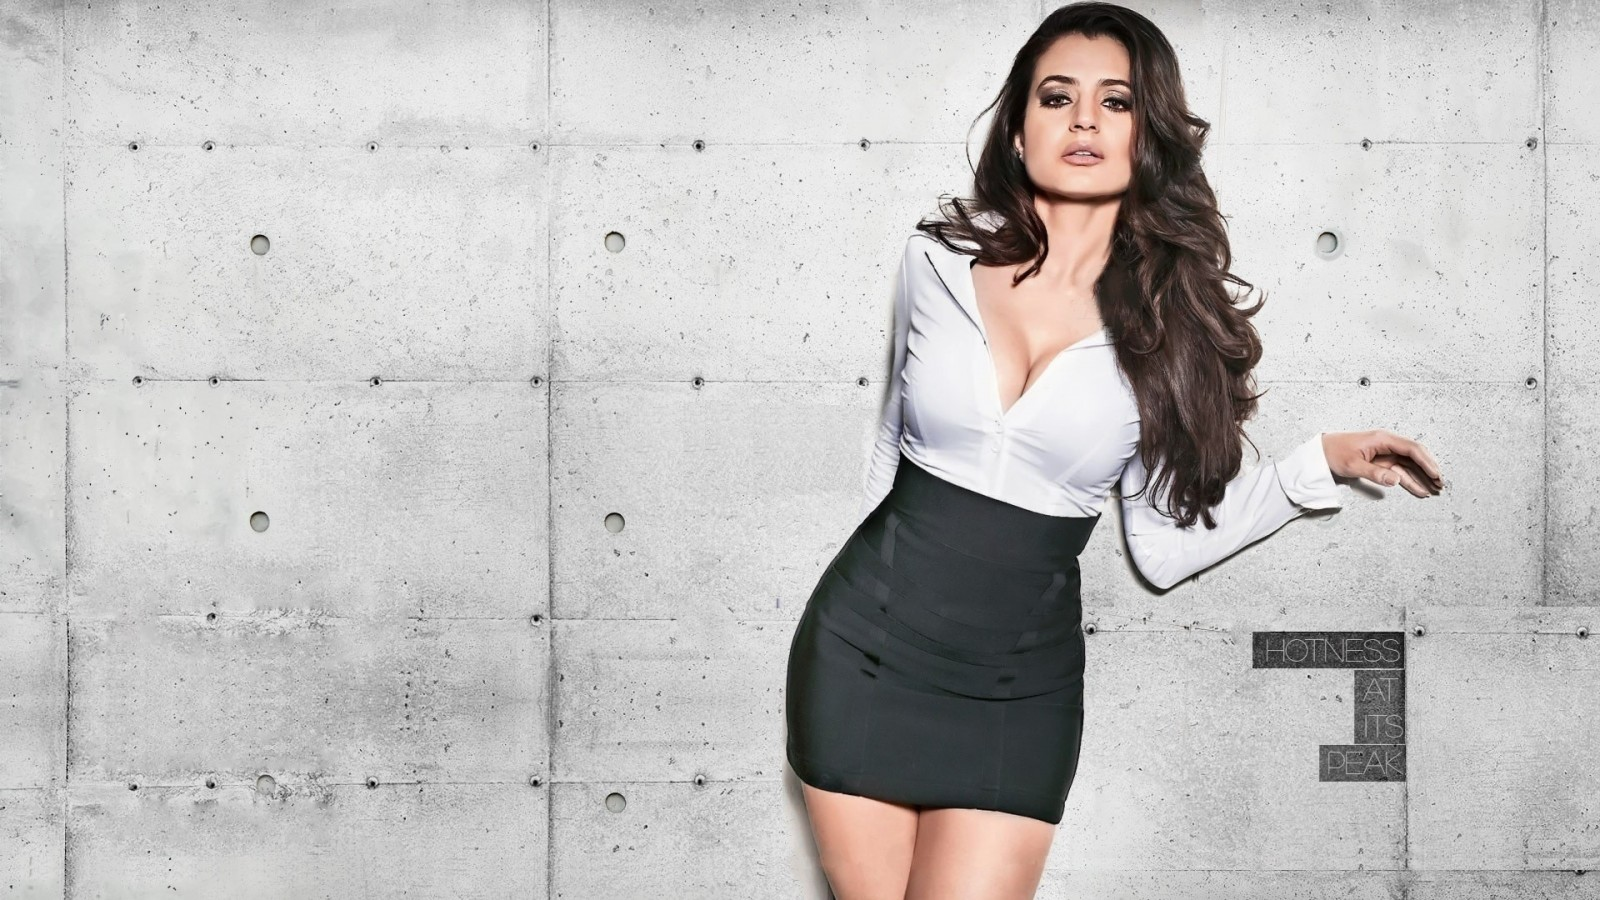 ameesha-patel-1600x900-hot-hd